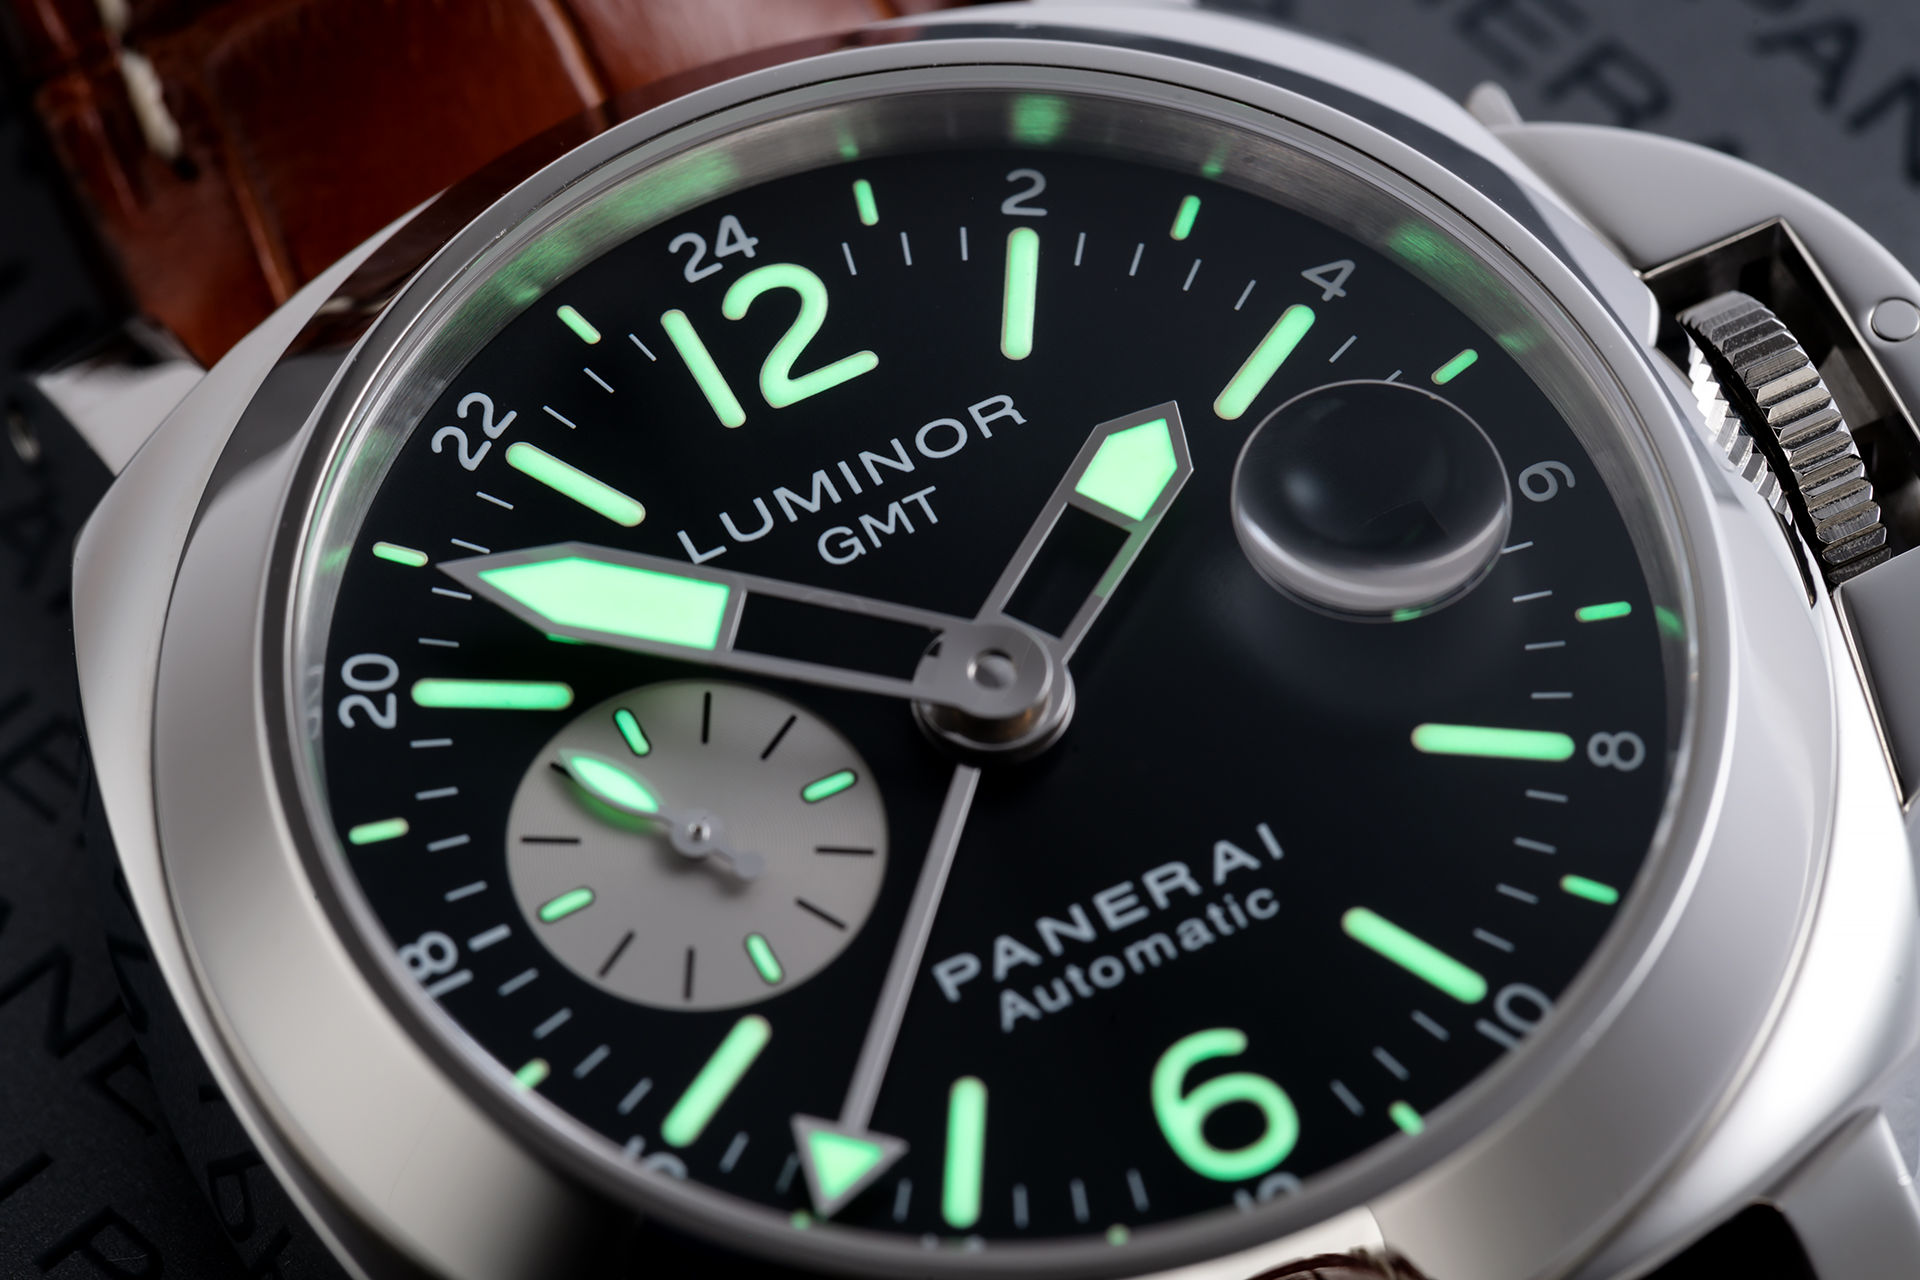 ref PAM 088 | Panerai Warranty to 2021 | Panerai Luminor GMT